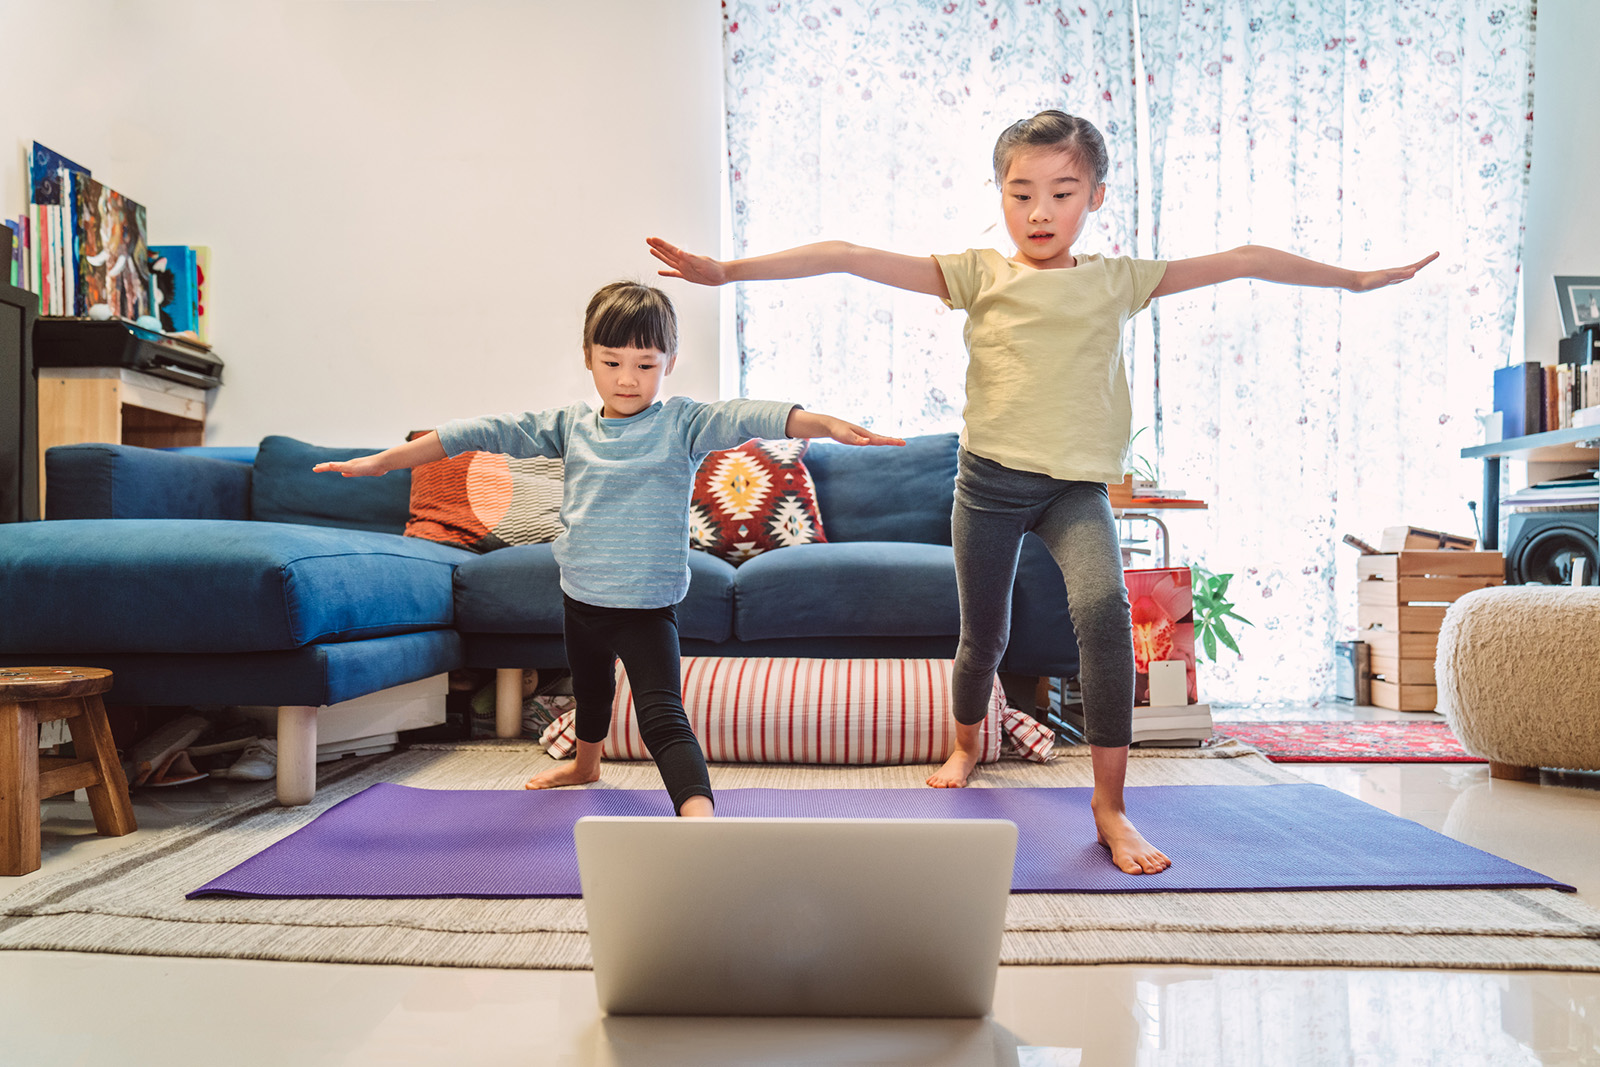 Two children doing yoga pose while standing on yoga mat in living room and looking at laptop screen